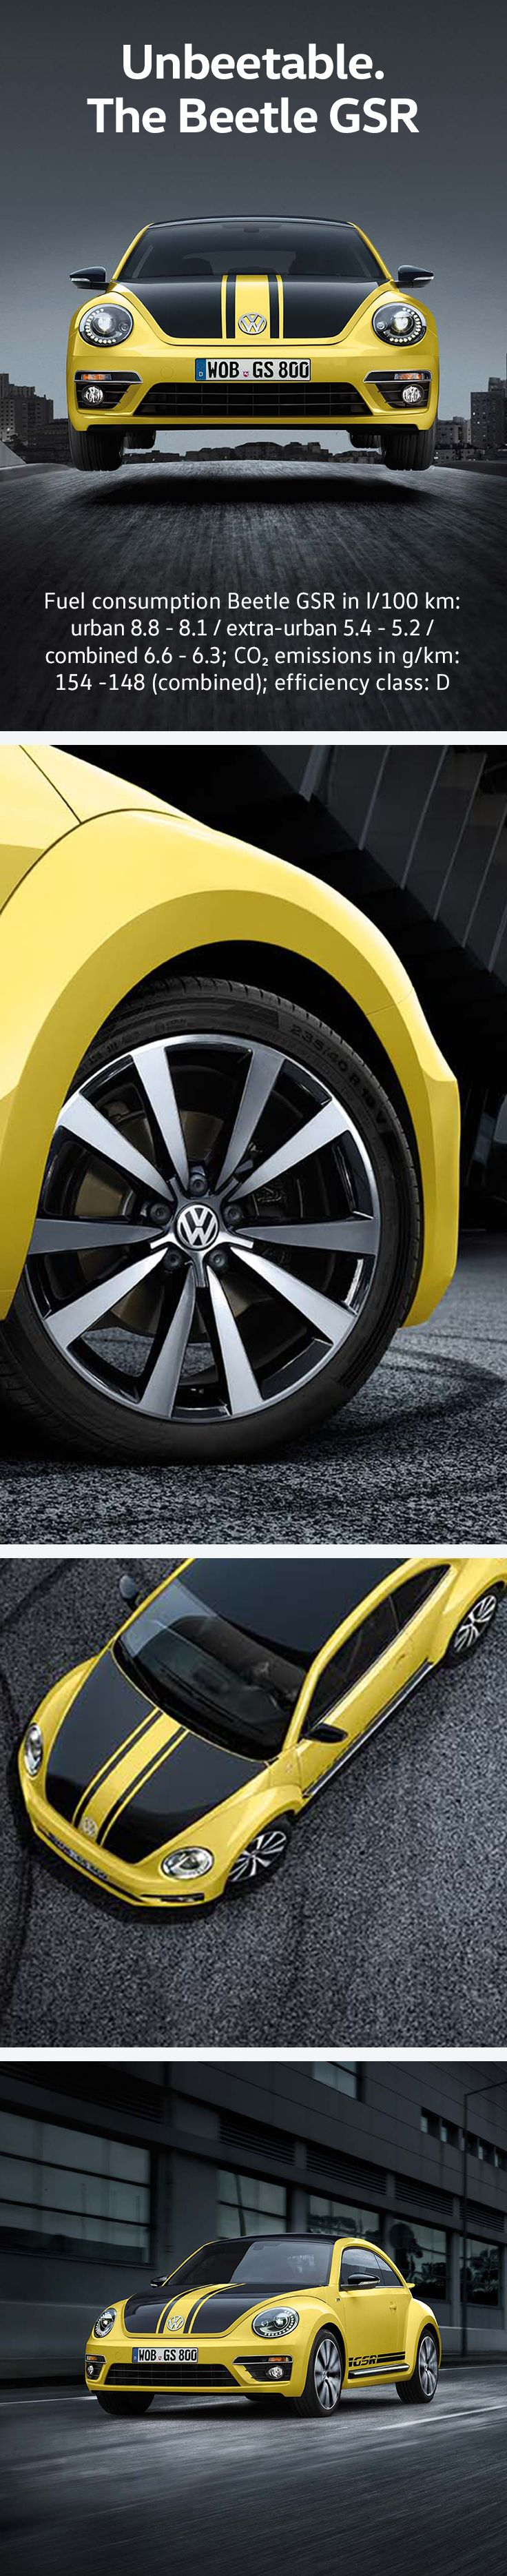 Black, yellow and with a real sting in its tail: after 40 years, the Volkswagen Beetle GSR is back. The GSR is an exclusive model and strictly limited to 3,500 vehicles, each with an individually engraved limited-edition plate on the steering wheel. Some more facts: R-Line bumpers, 19-Inch Tornado alloy wheels and black leather R-Line sport seats with yellow contrast stitching.